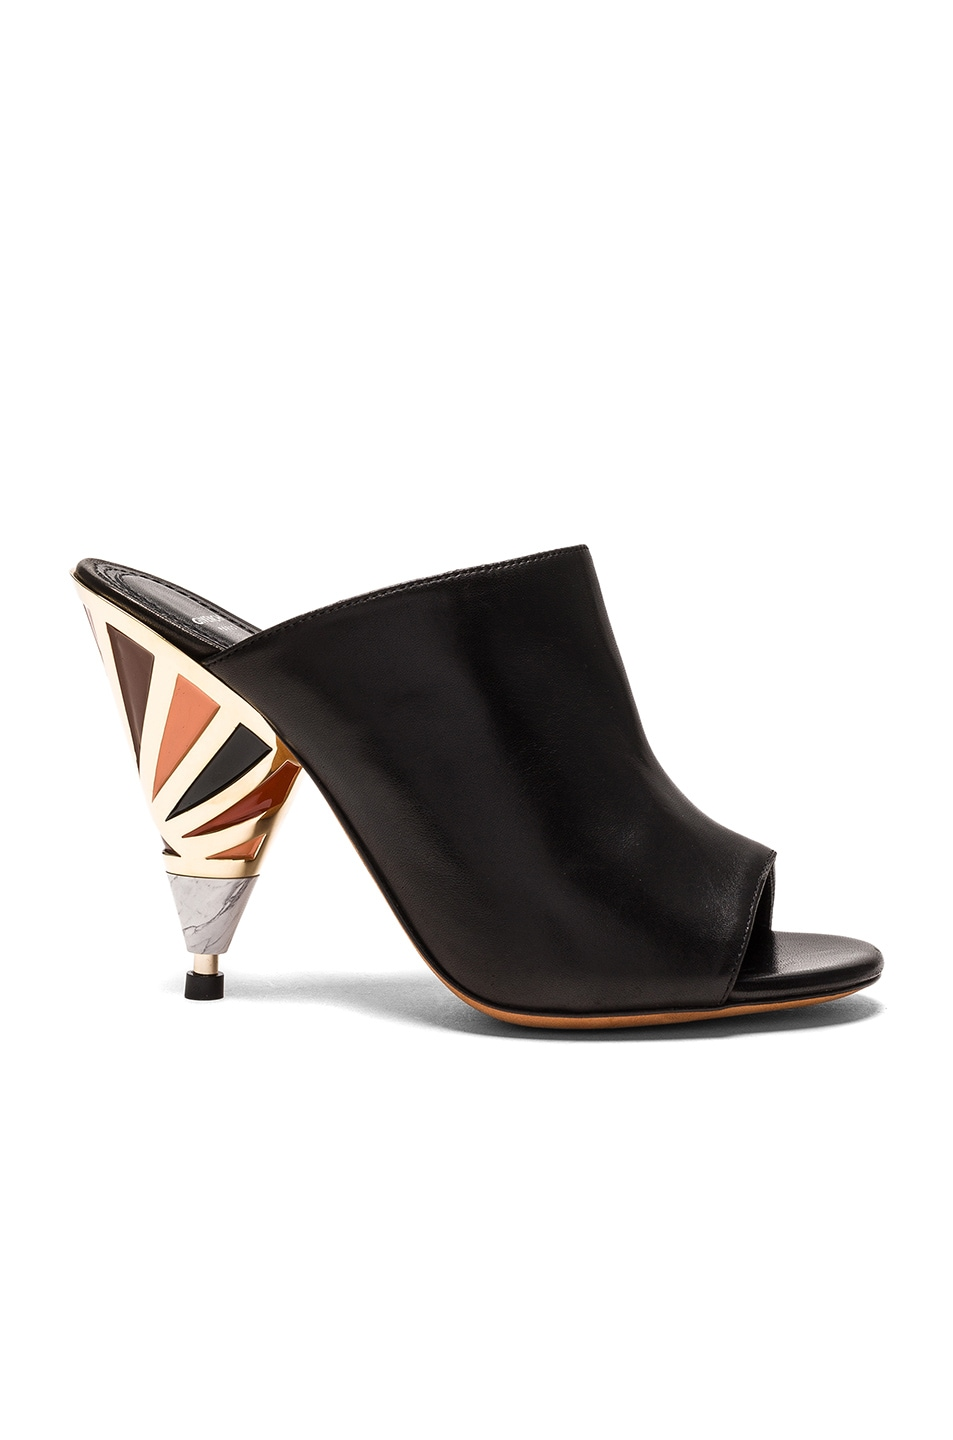 Image 1 of Givenchy Leather Multicolor Heel Mules in Black